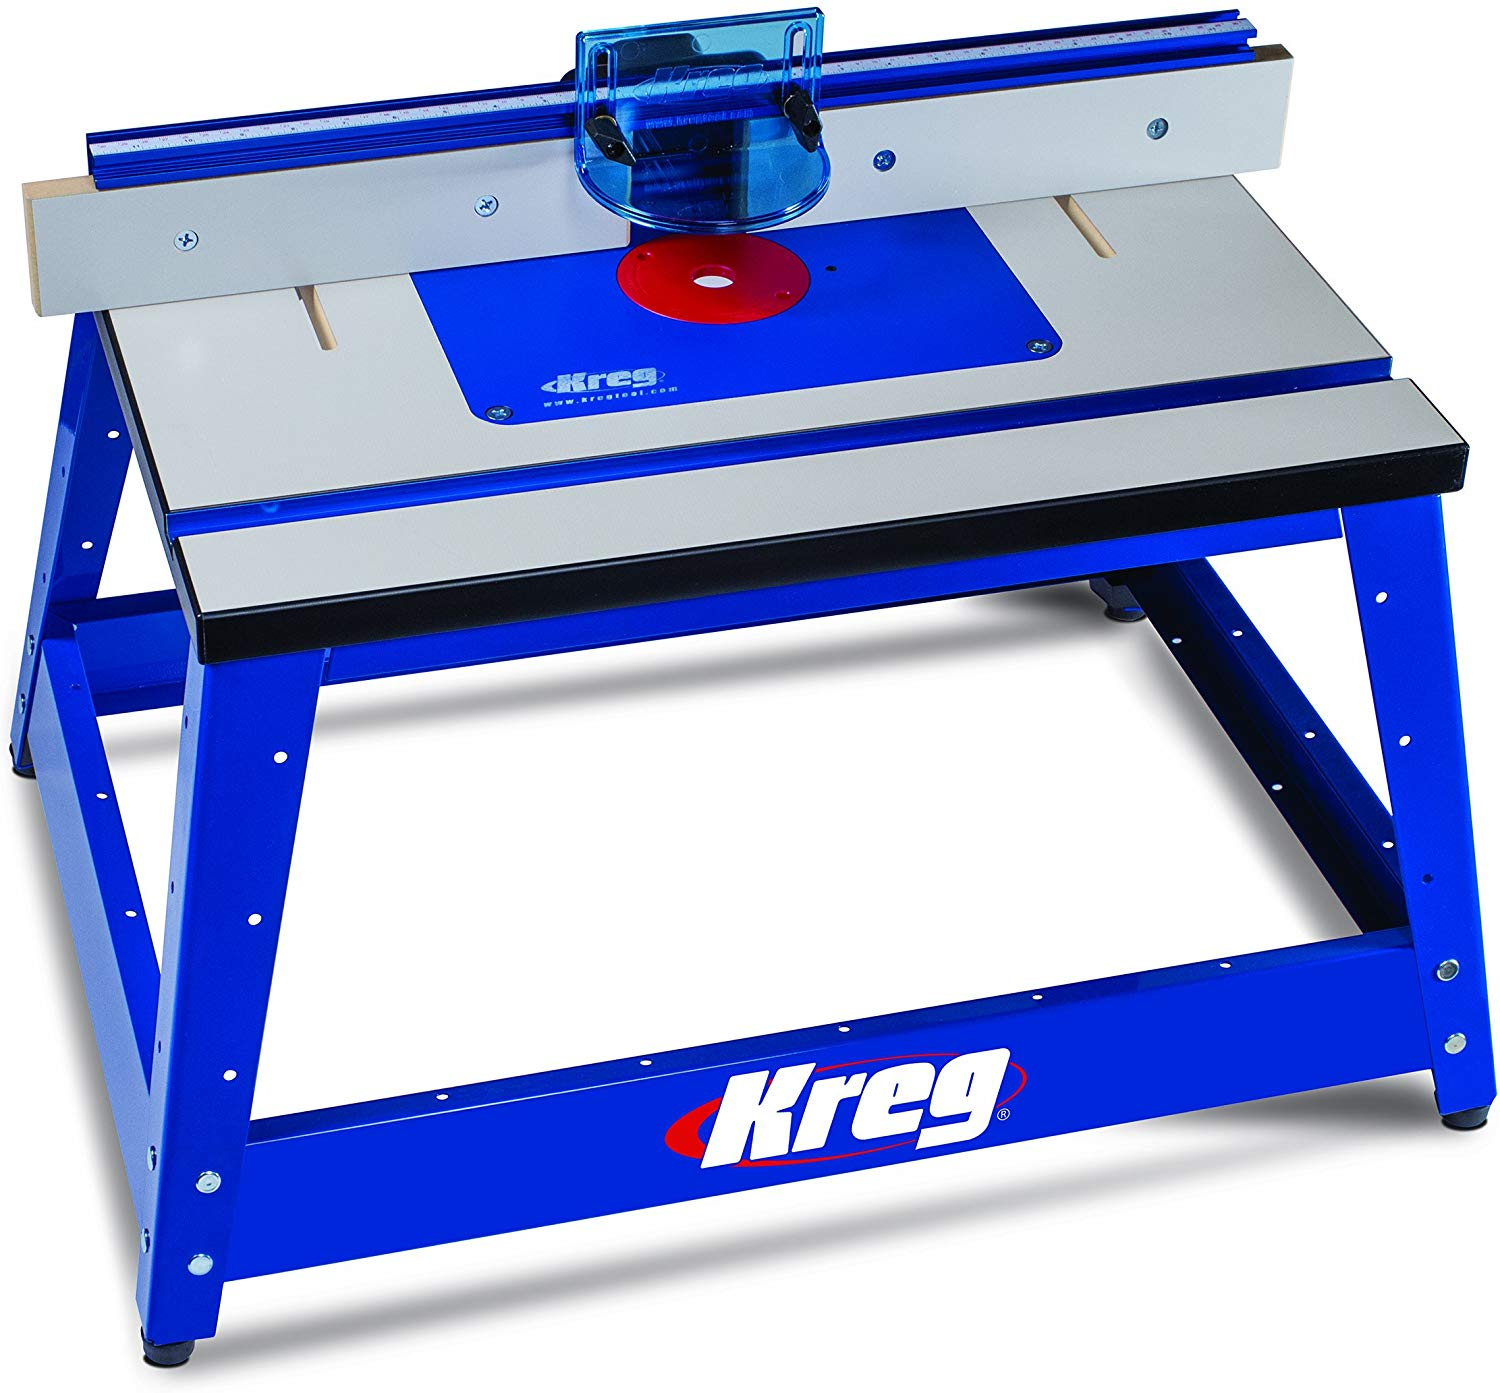 Kreg Benchtop Router Table Reviews